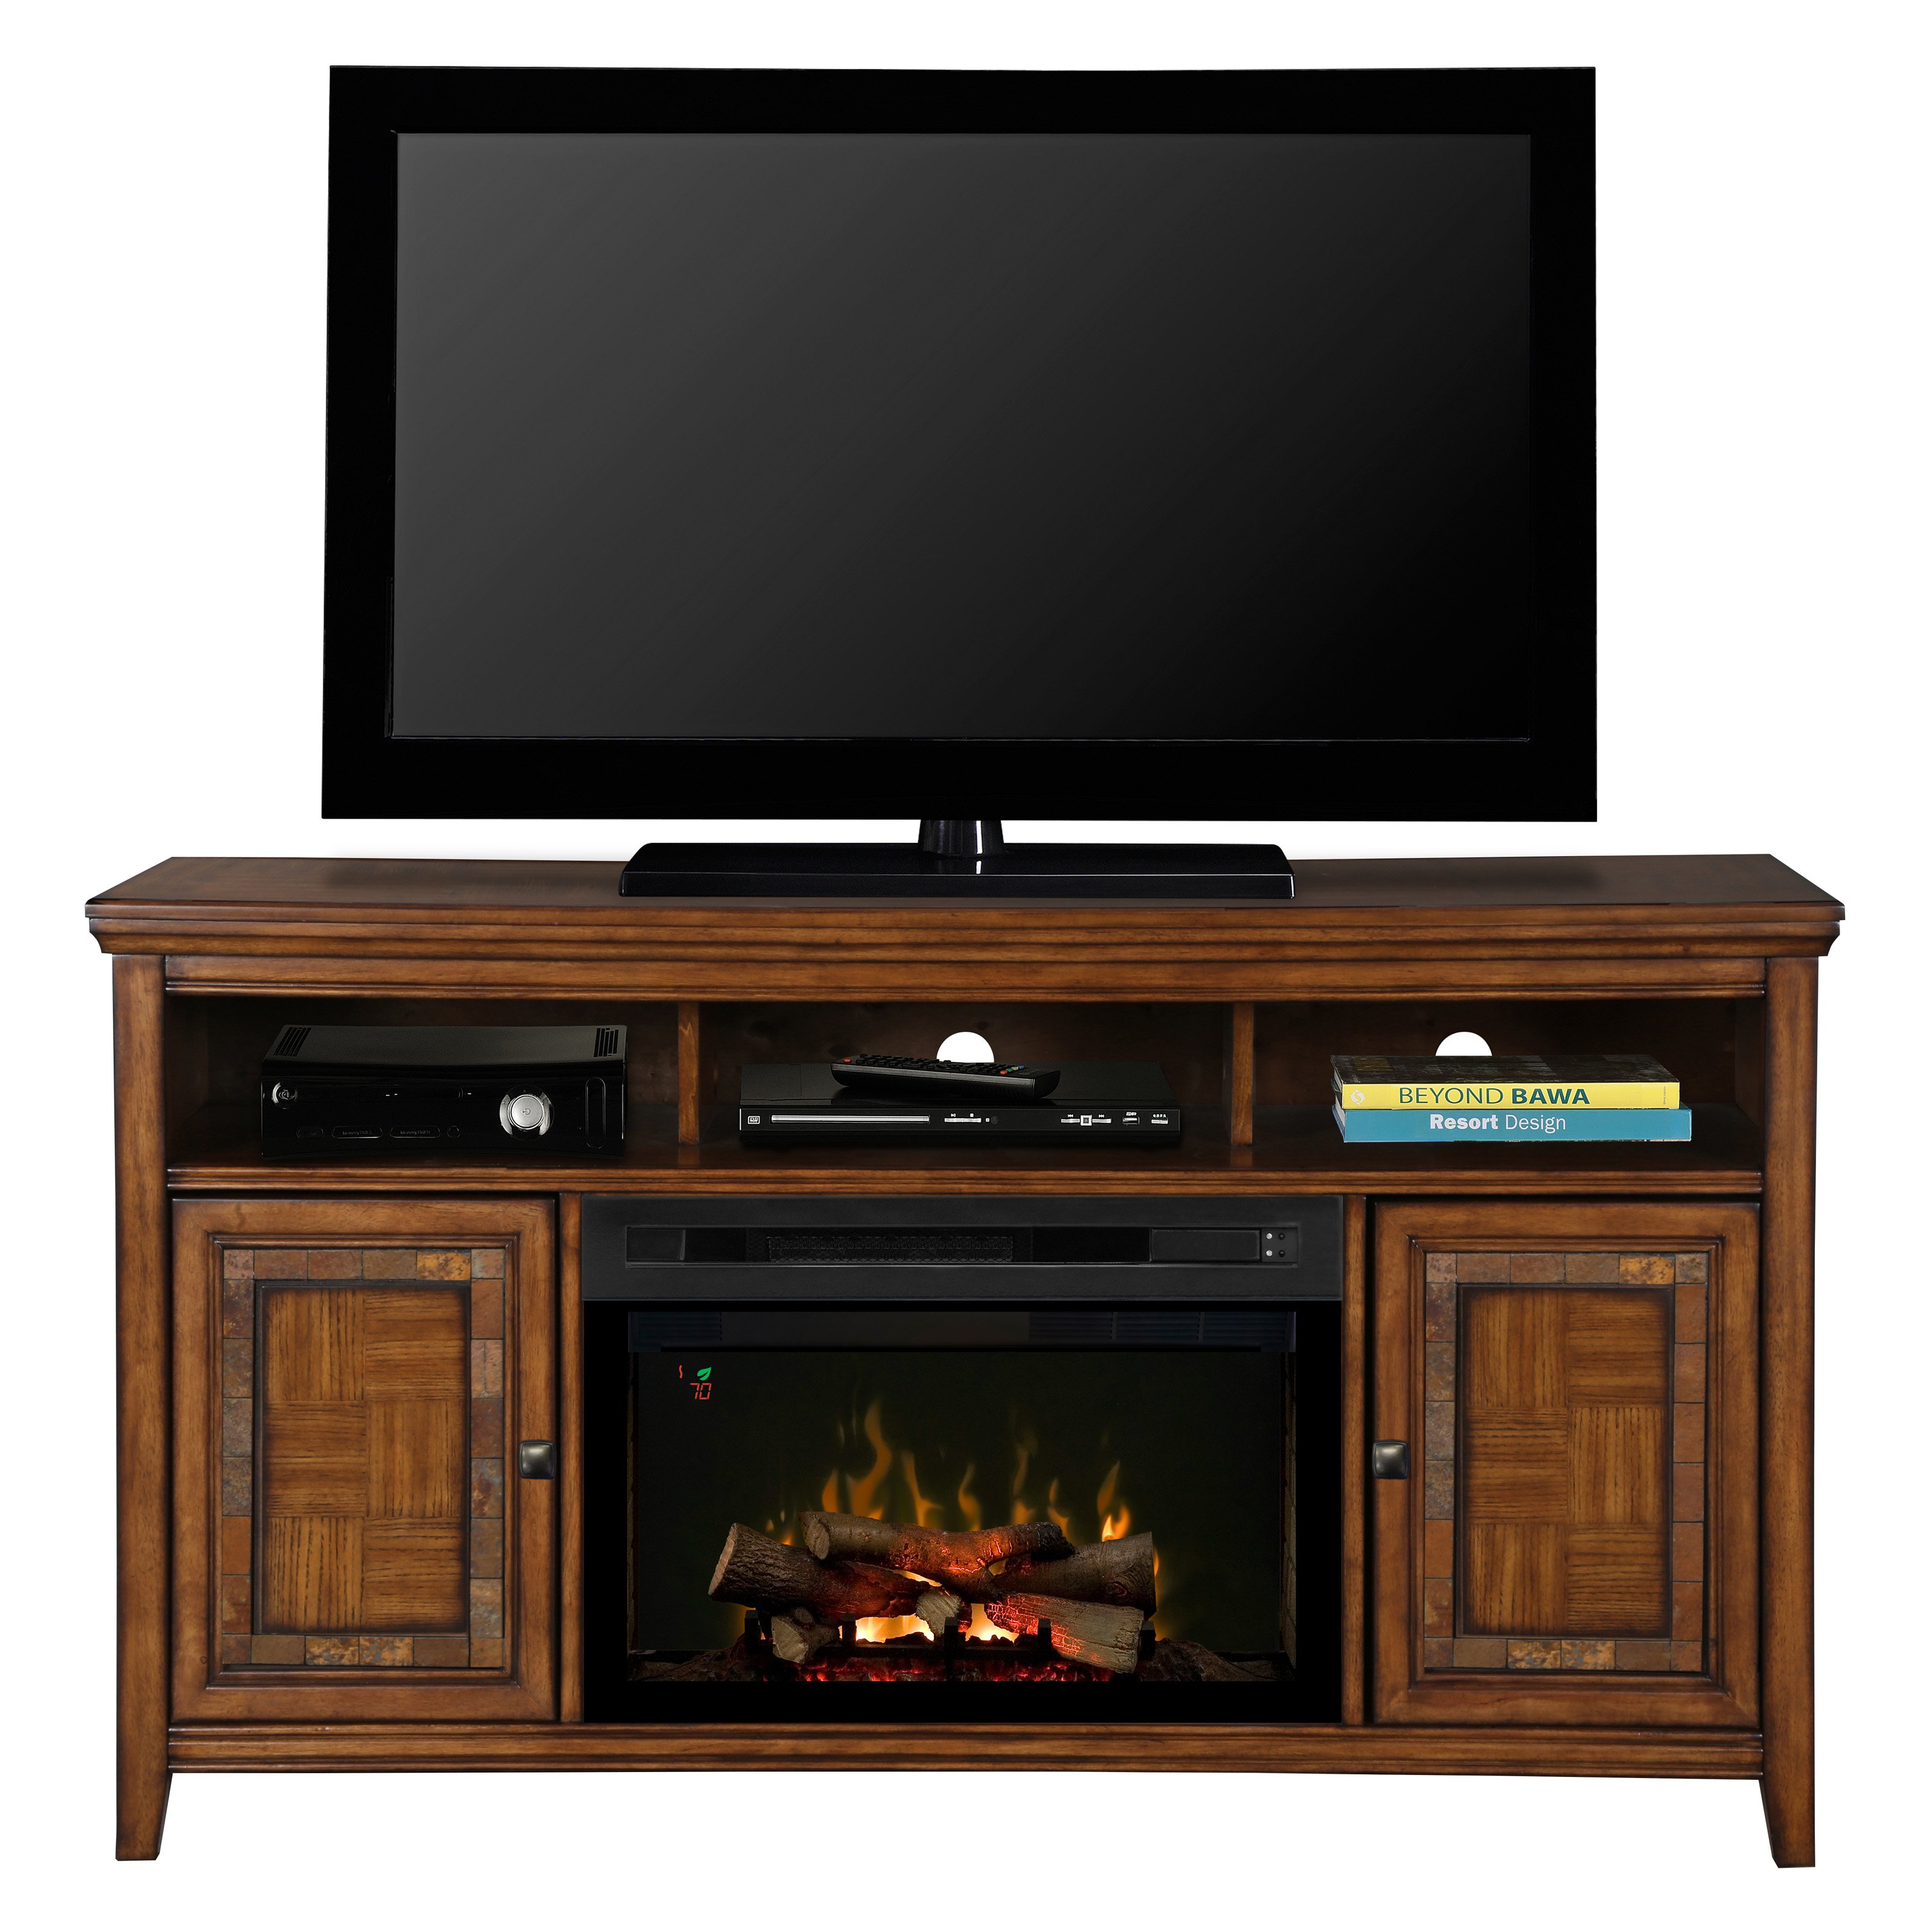 Dimplex Lynbrook Media Console with Electric Fireplace - Walmart.com